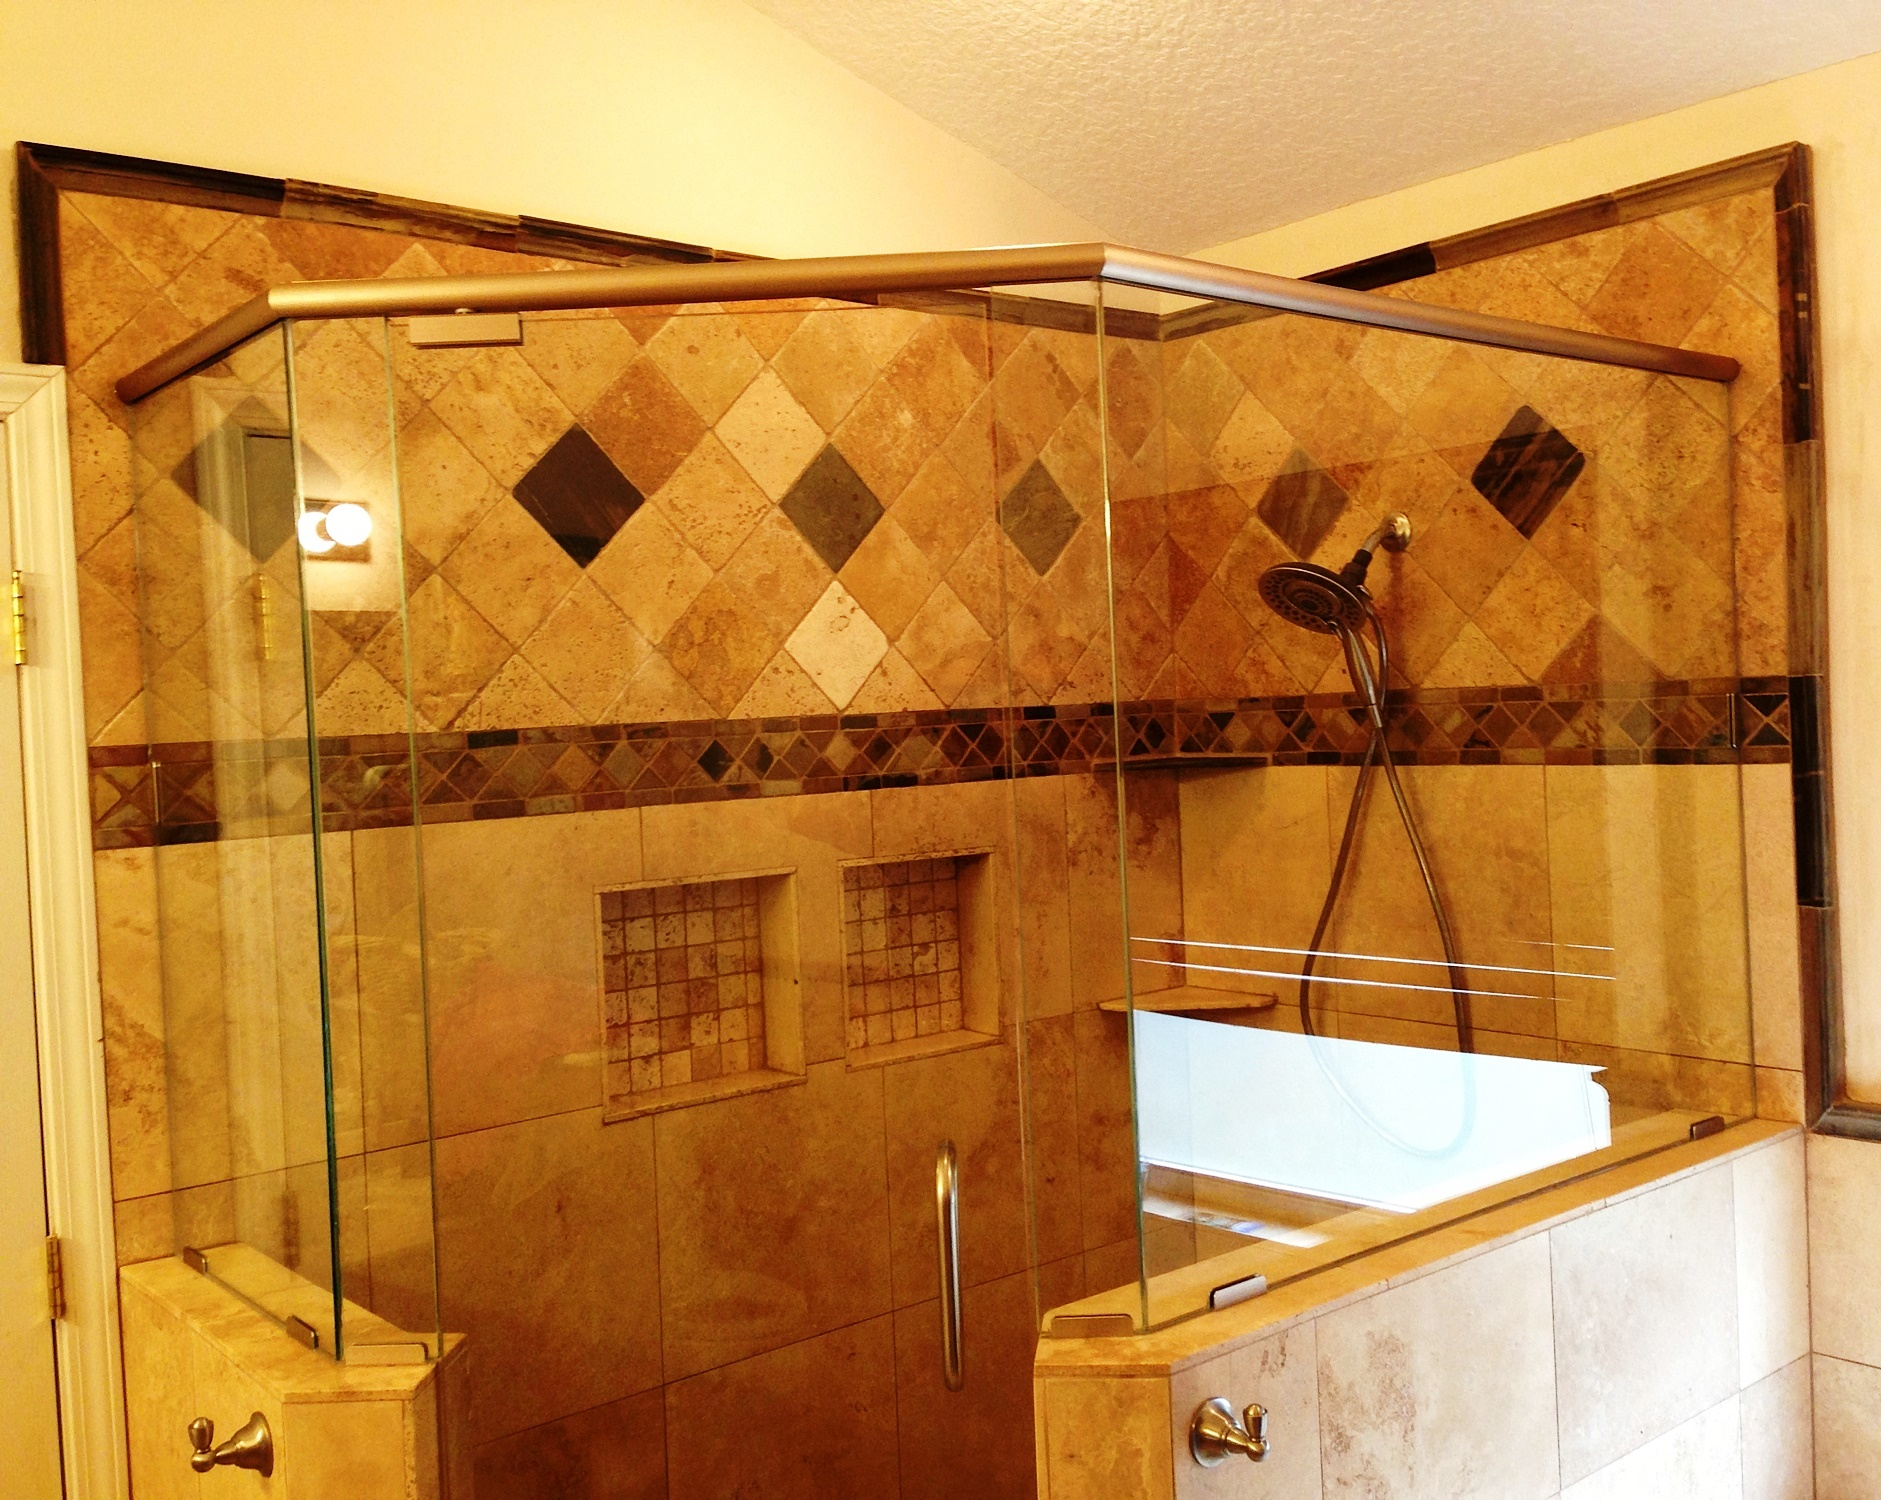 BATHROOMS/Shower_02-23-13-1.jpg